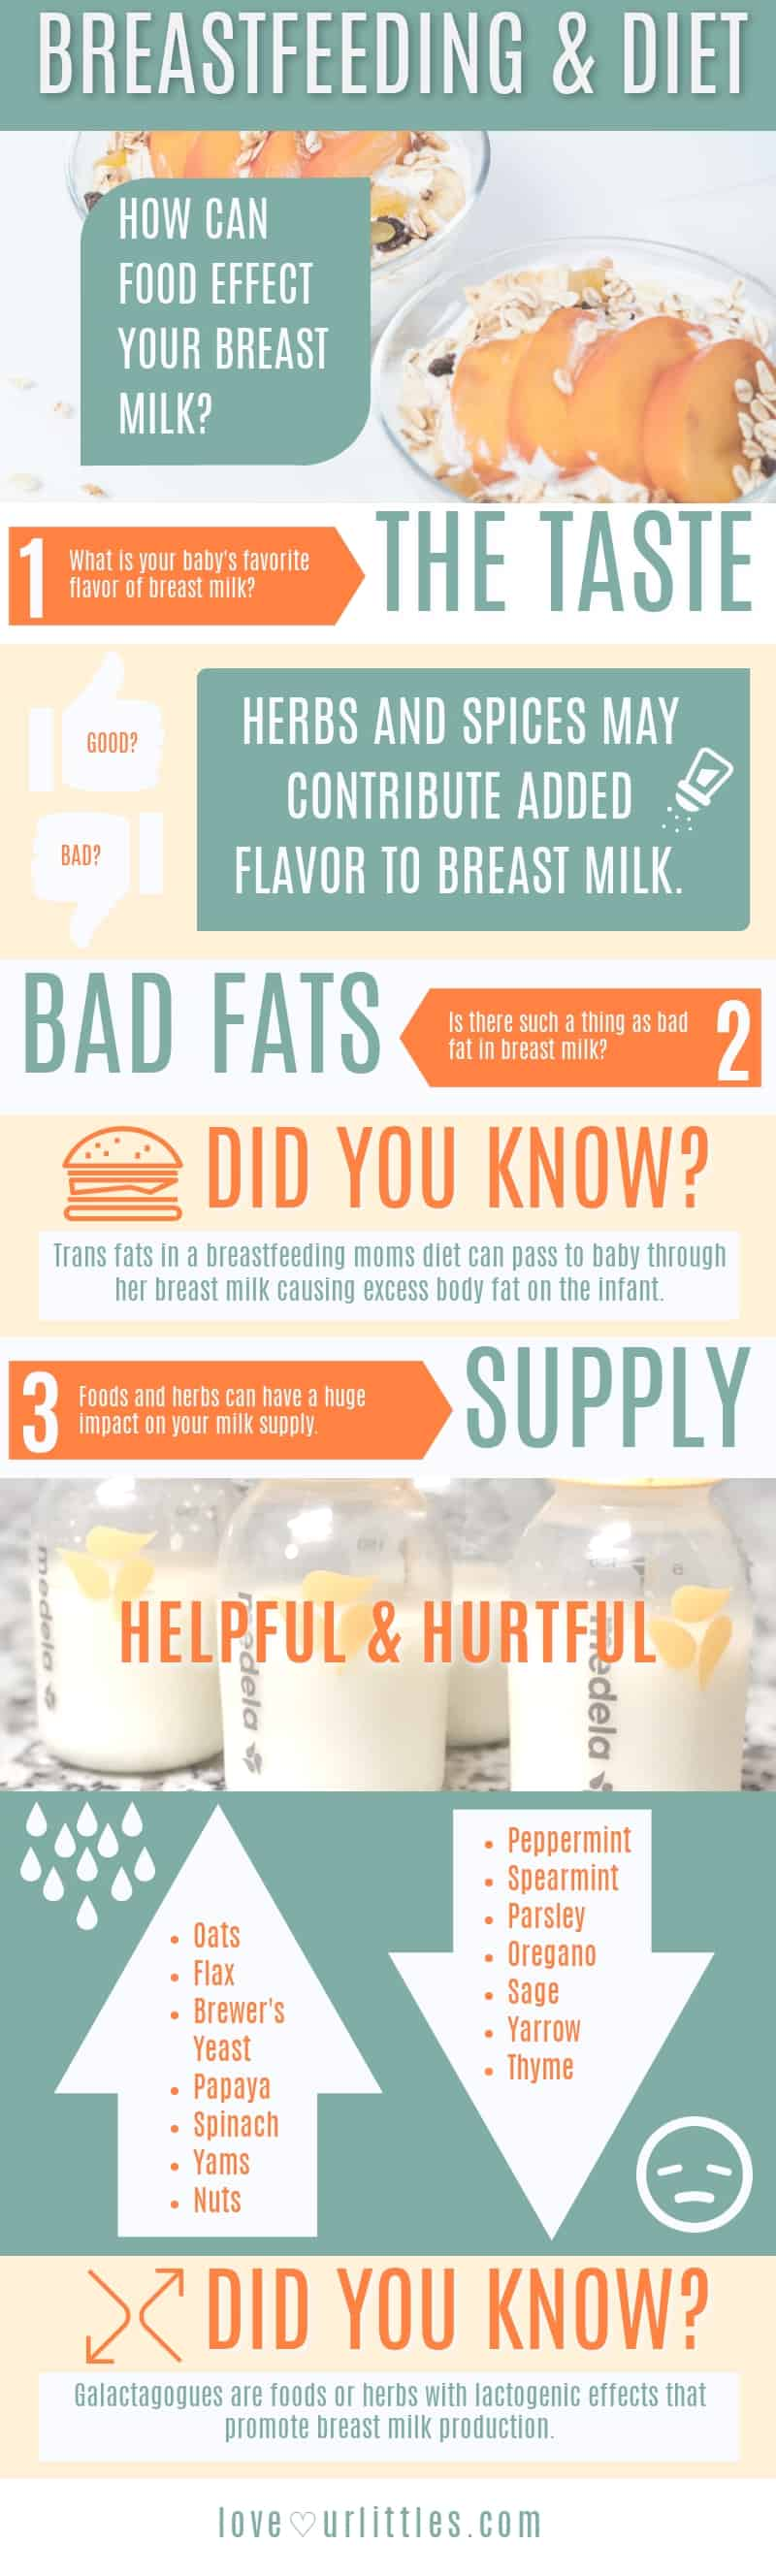 Breastfeeding diet and foods infographic